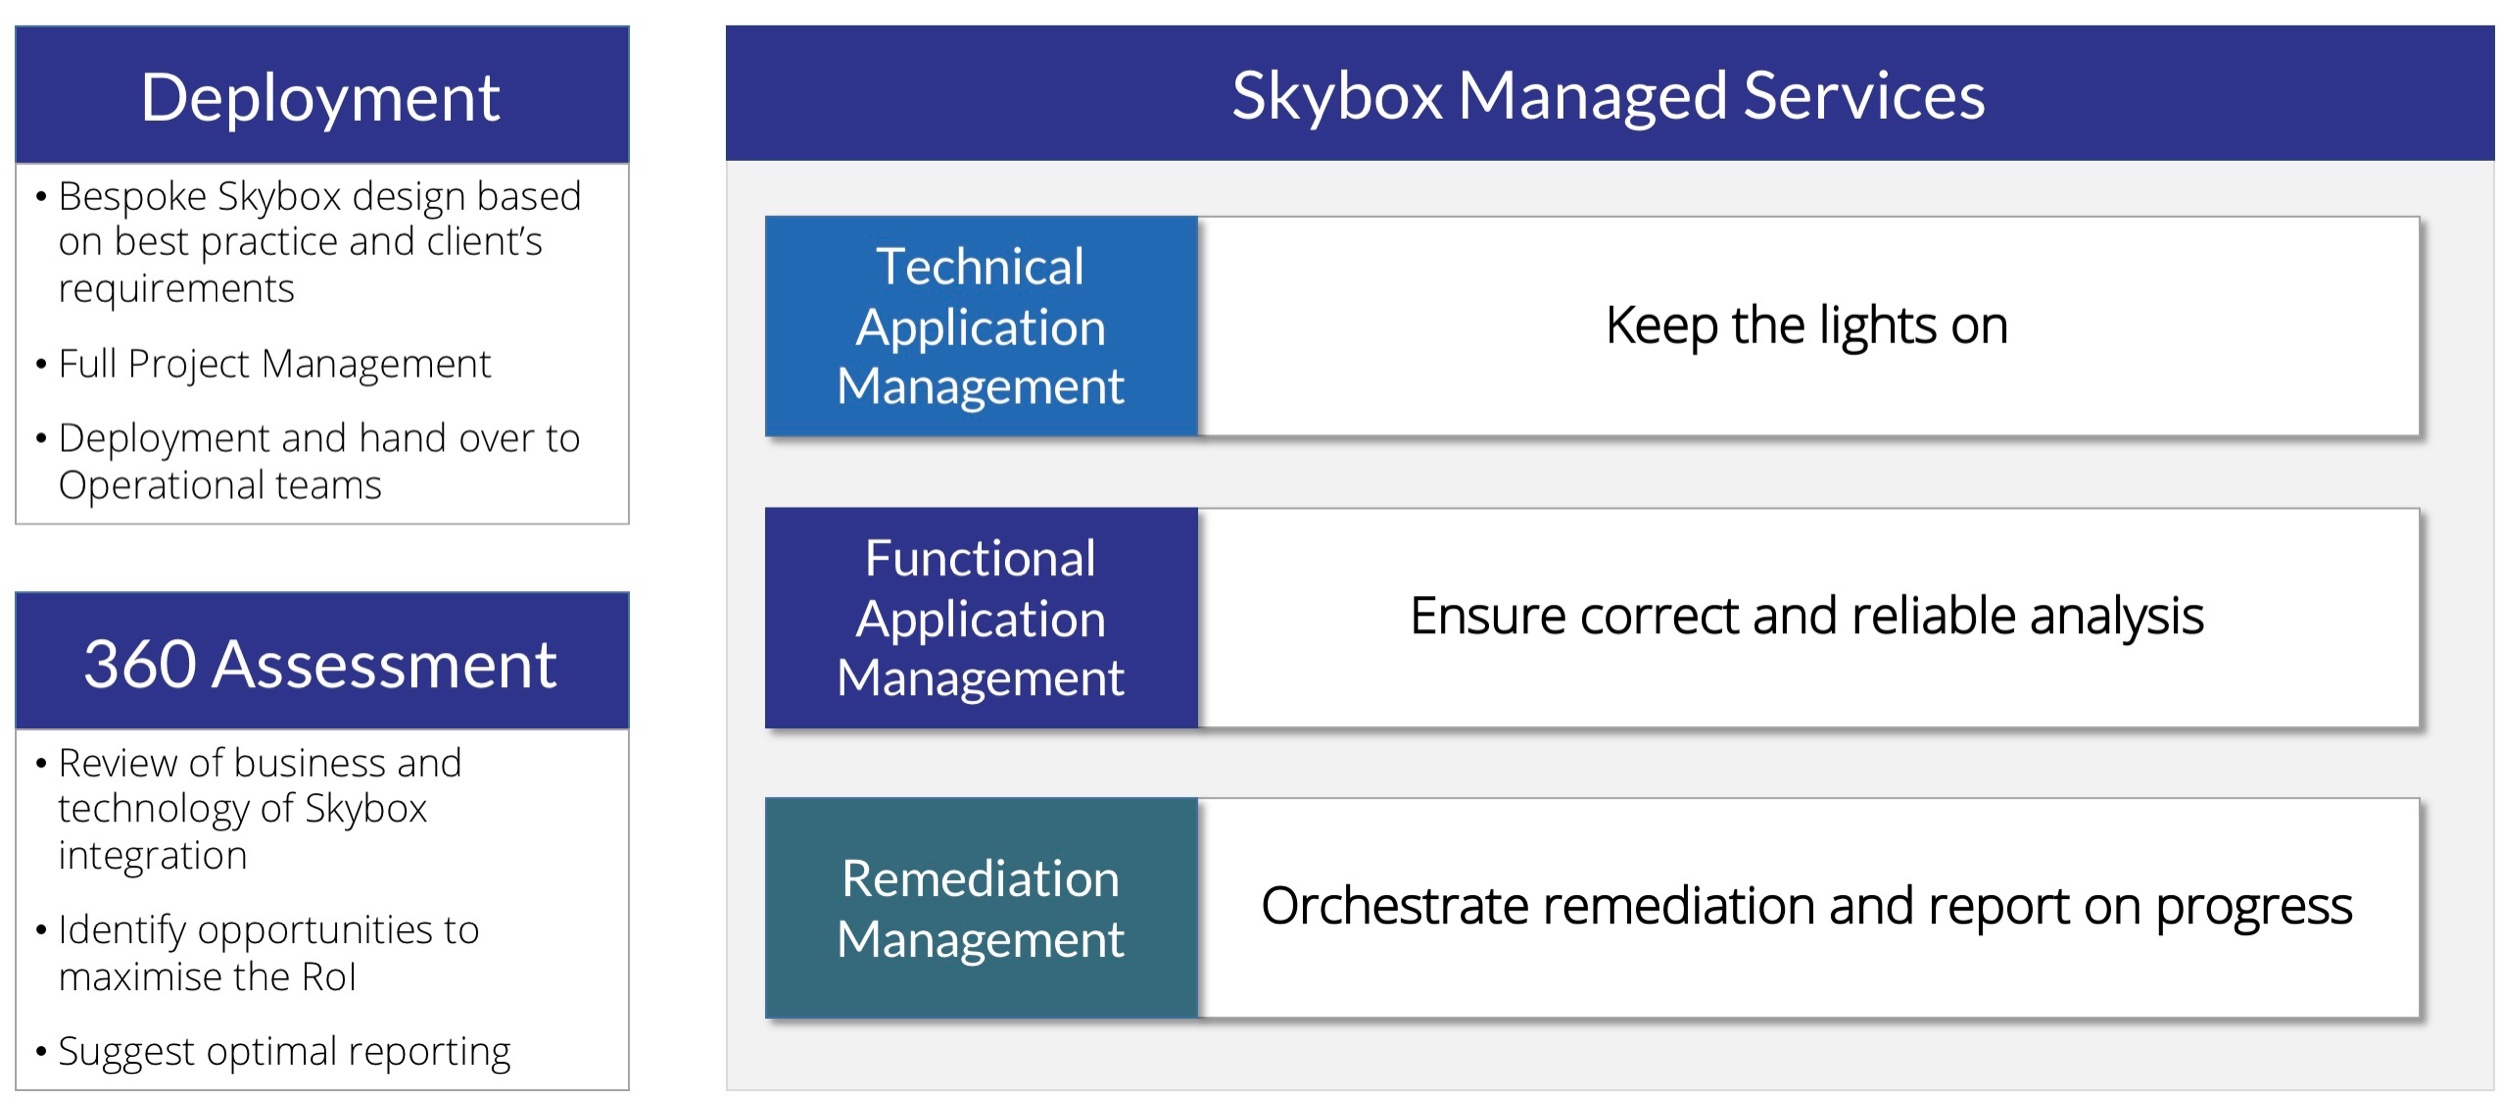 FORESIGHT CYBER SKYBOX SERVICES